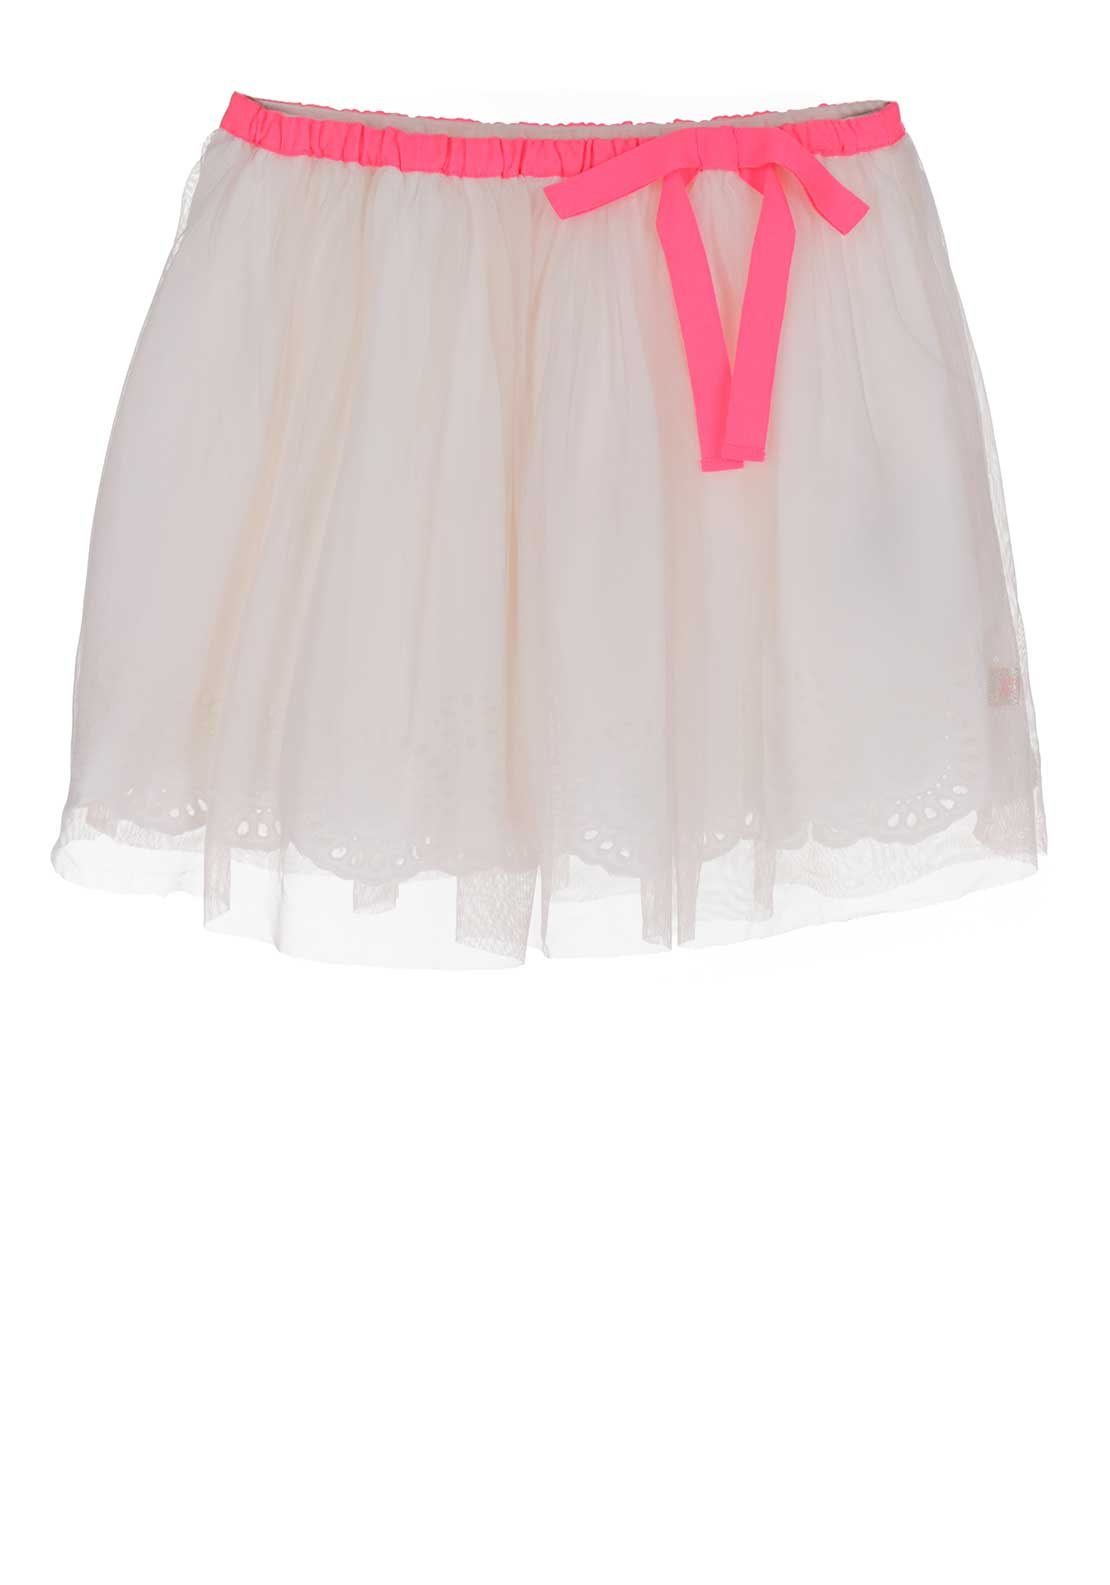 Billieblush Lace Lined Tulle Skirt, White